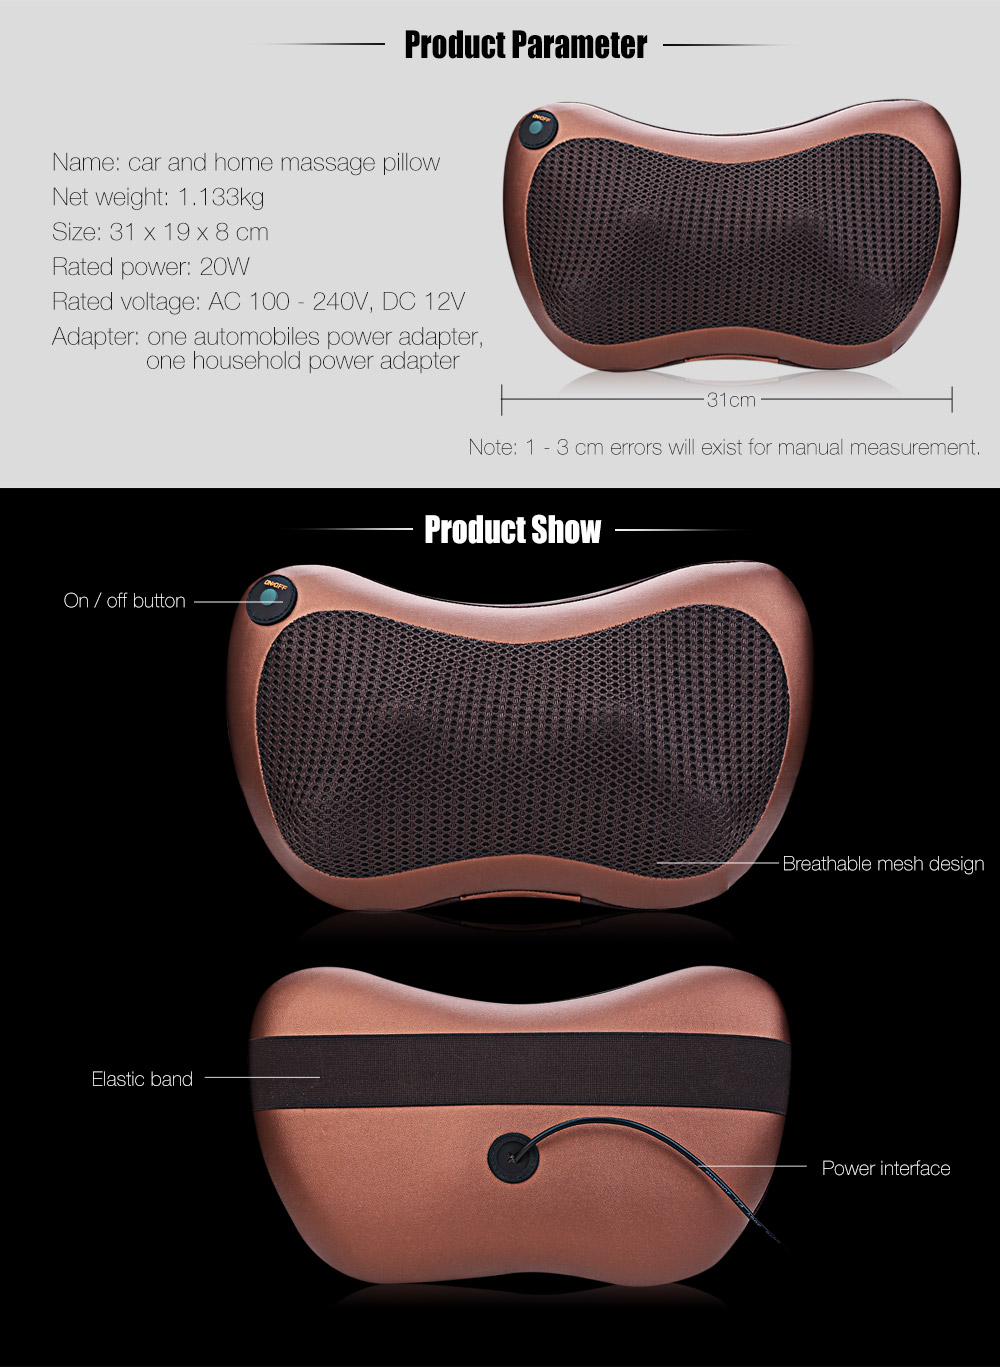 Multifunction Massager Pillow Automobiles Home Dual-use Infrared Heating